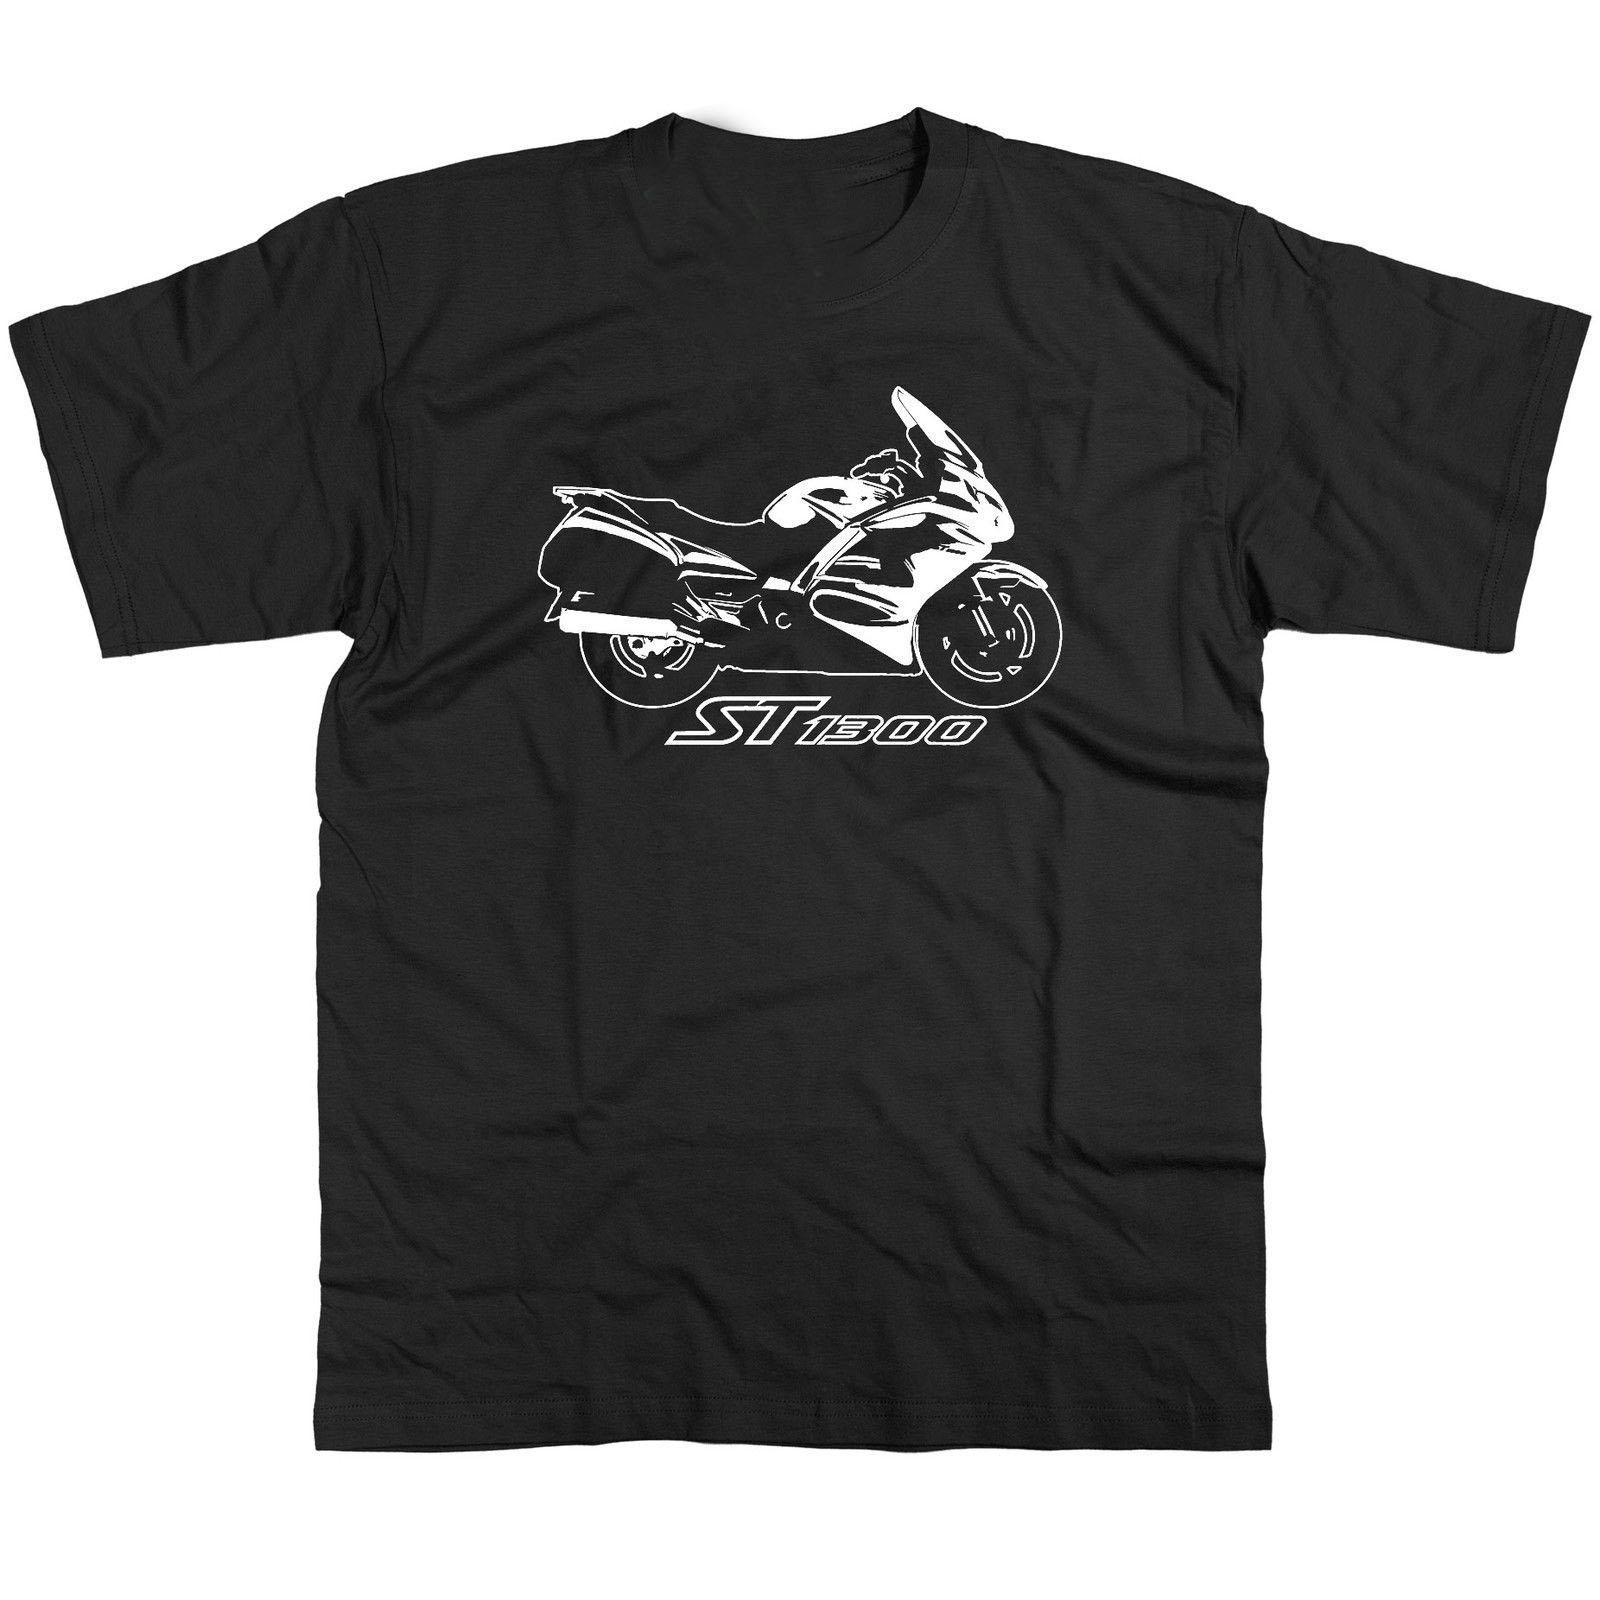 2018 New Summer Tee Shirt Japanese Motorcycle st1300 T Shirt Pan European Motorcycle Cool T-shirt